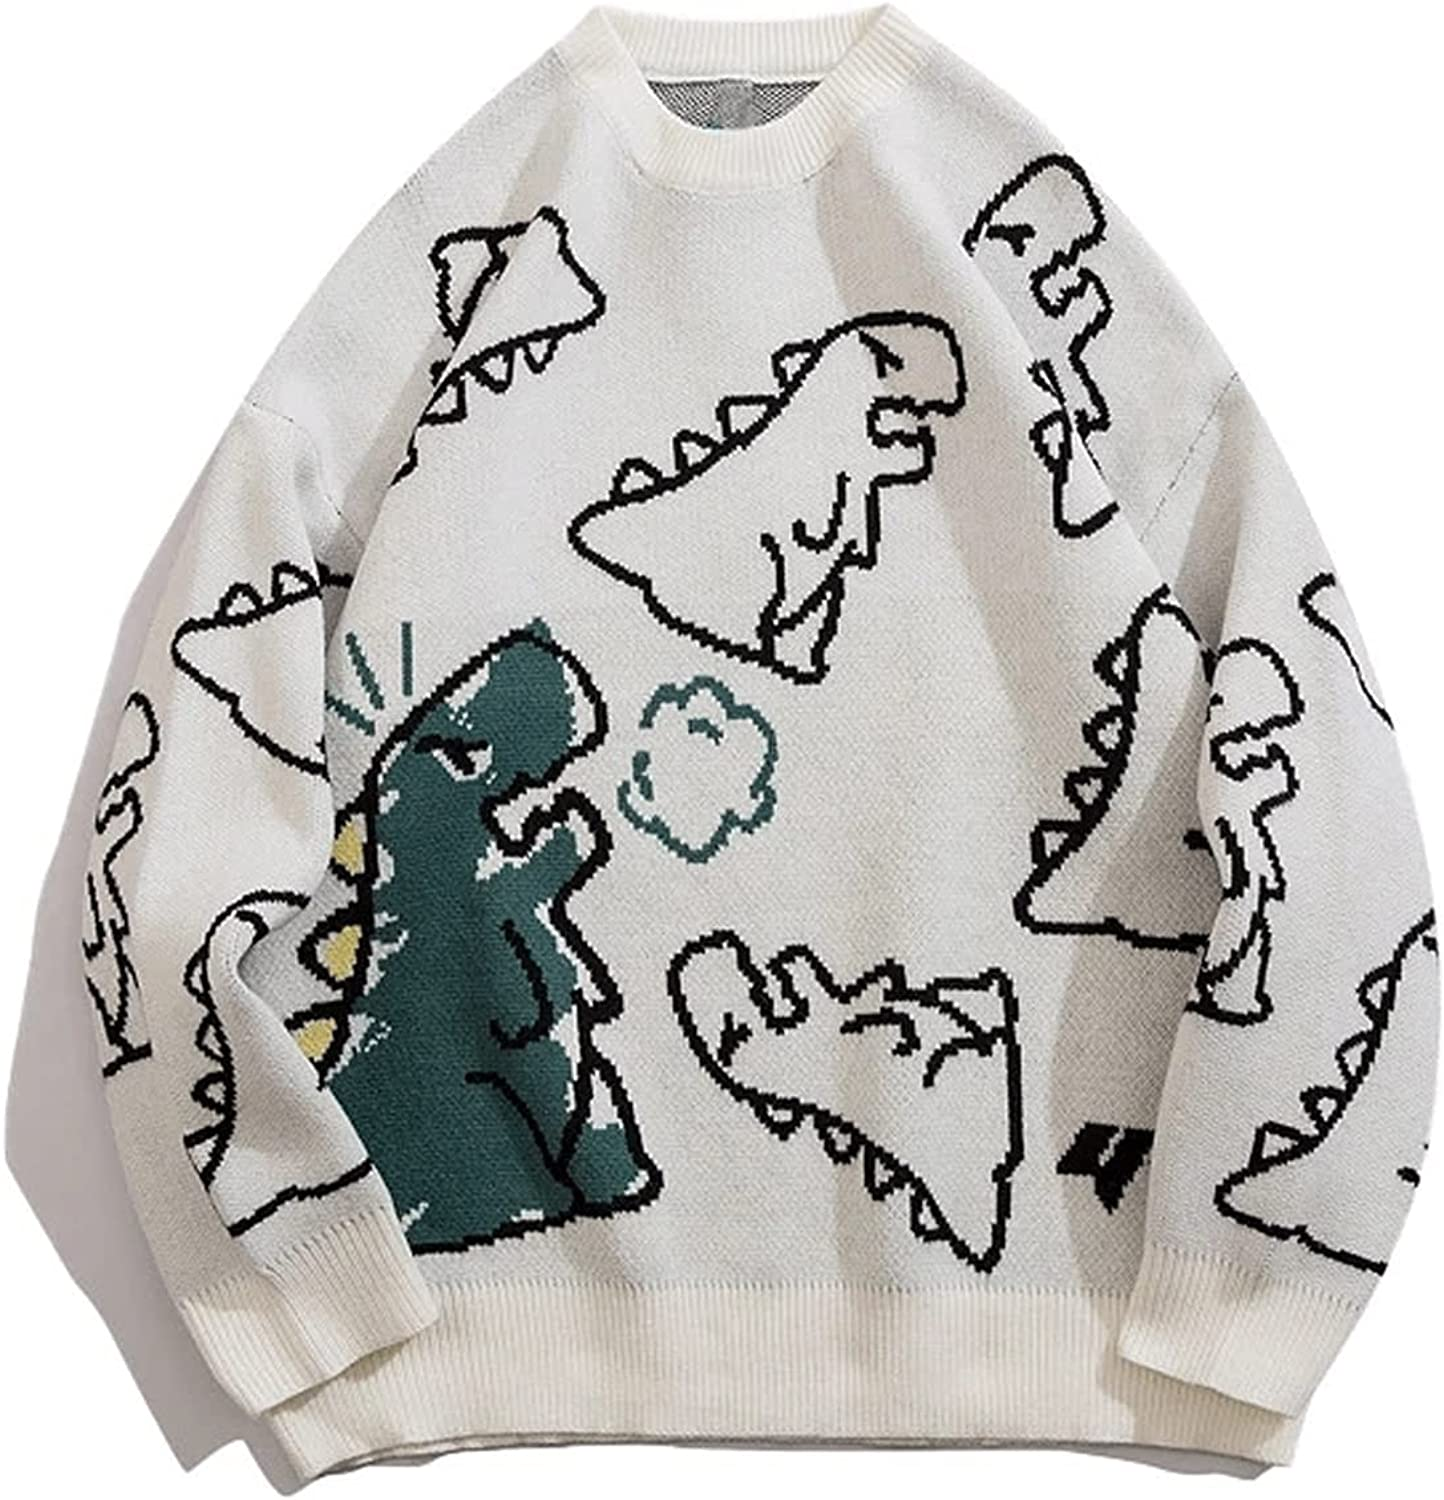 Zzx Cartoon Pattern Knitted Jumper Dinosaur Cartoon Pullover O-neck Oversize Casual Couple Male Sweaterss